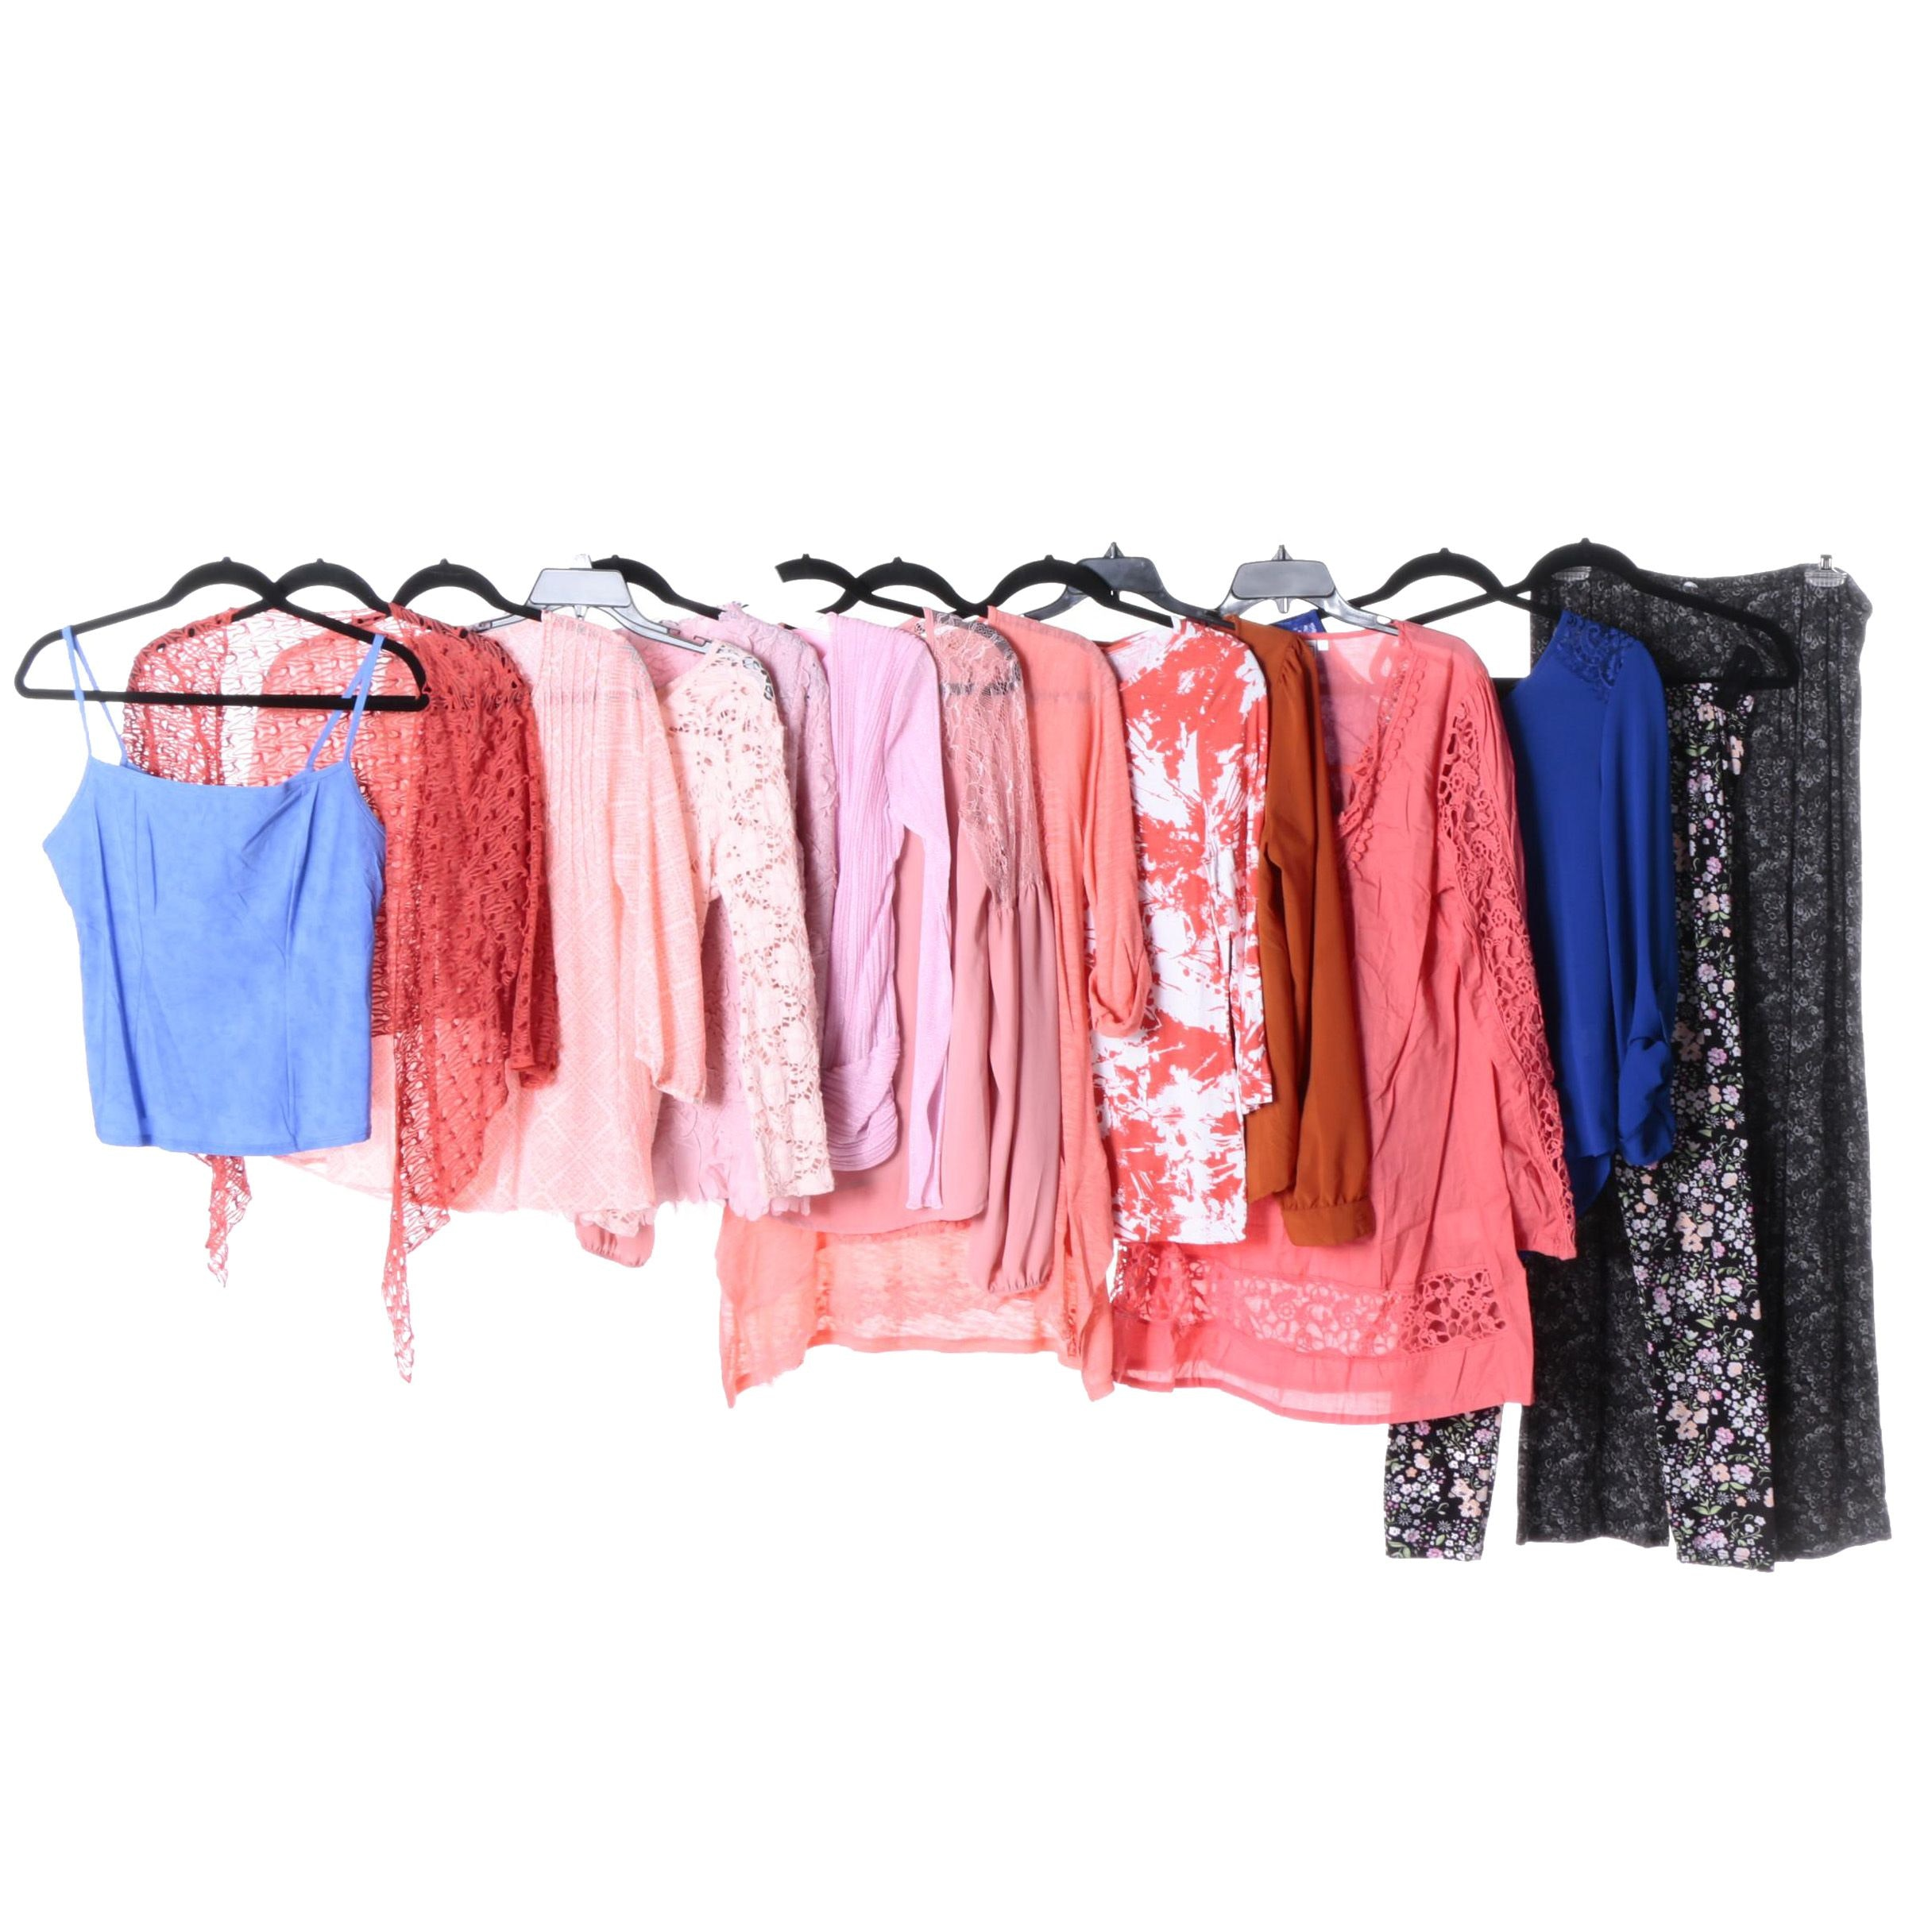 Women's Tops and Pants Including Rainbow and Essendi